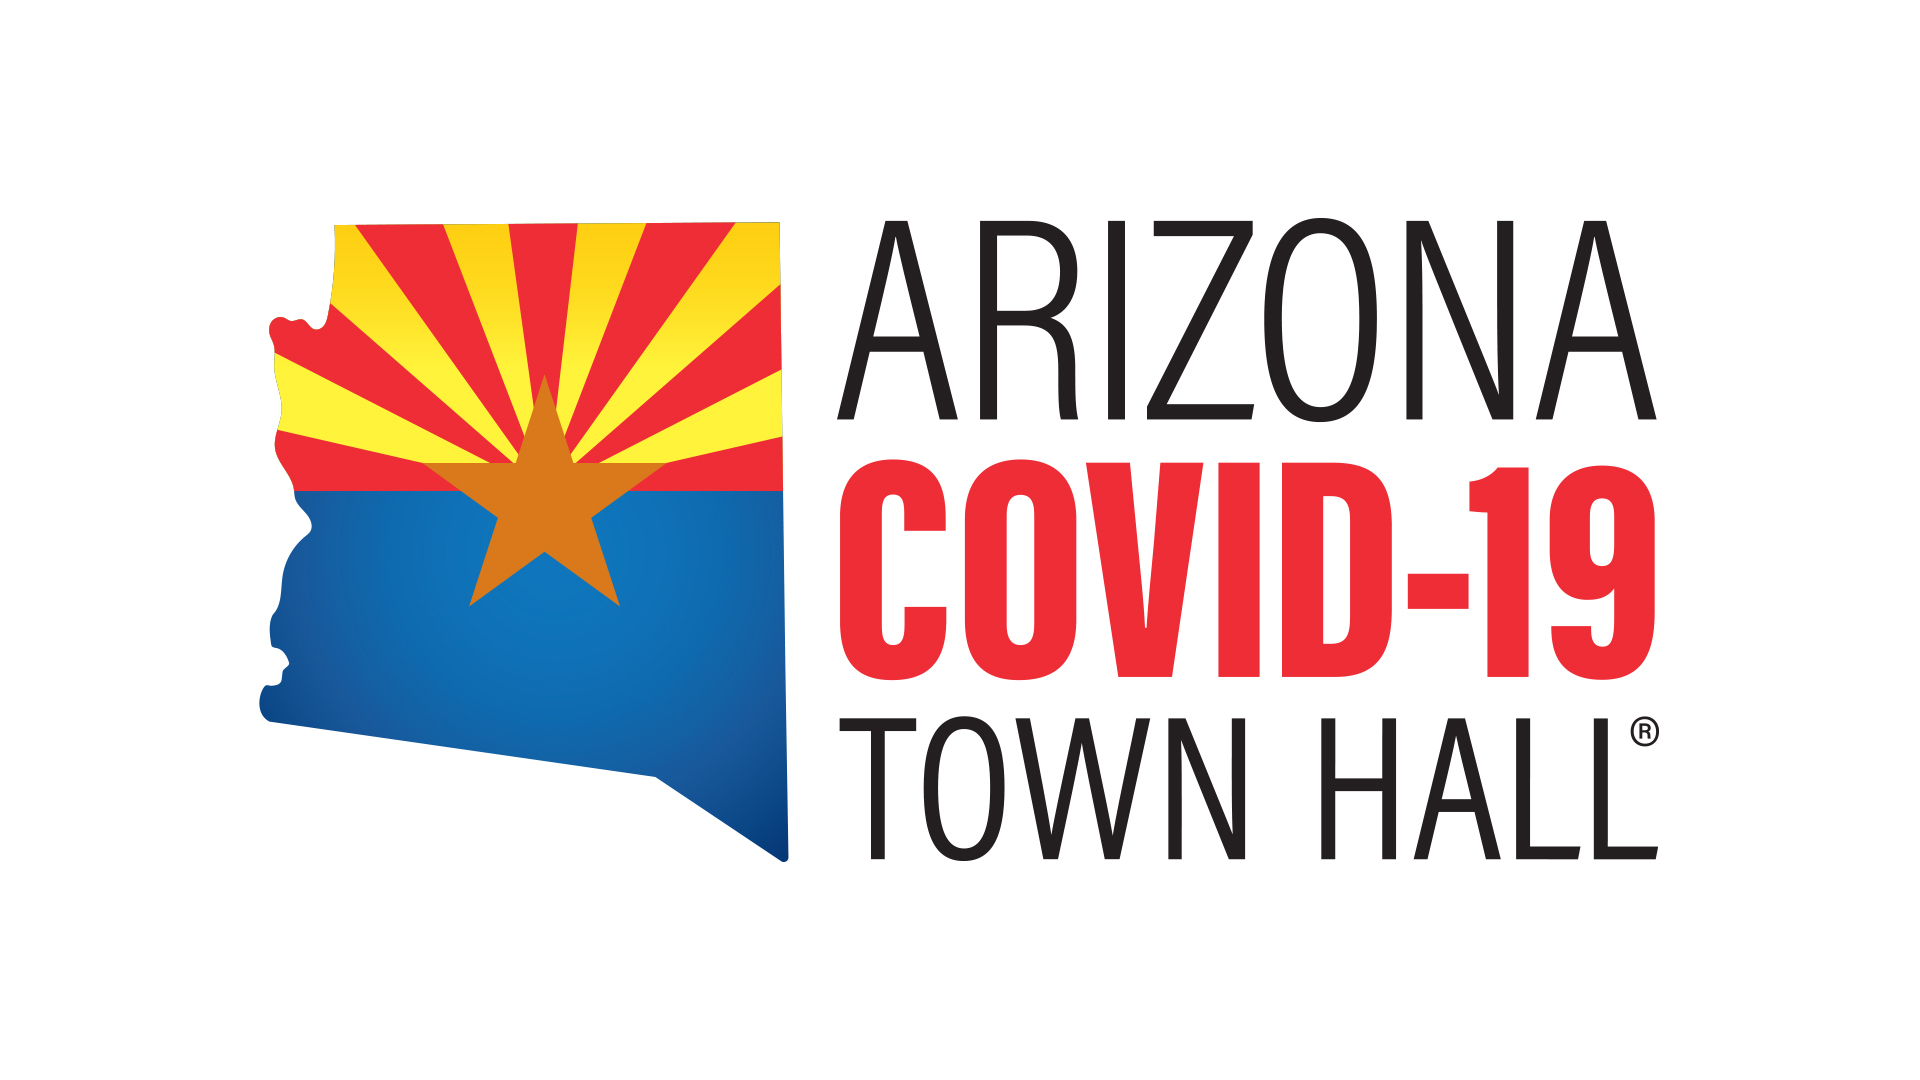 The live Arizona COVID-19 Town Hall will air Thursday, April 2 at 6 p.m. on PBS 6 and NPR 89.1.